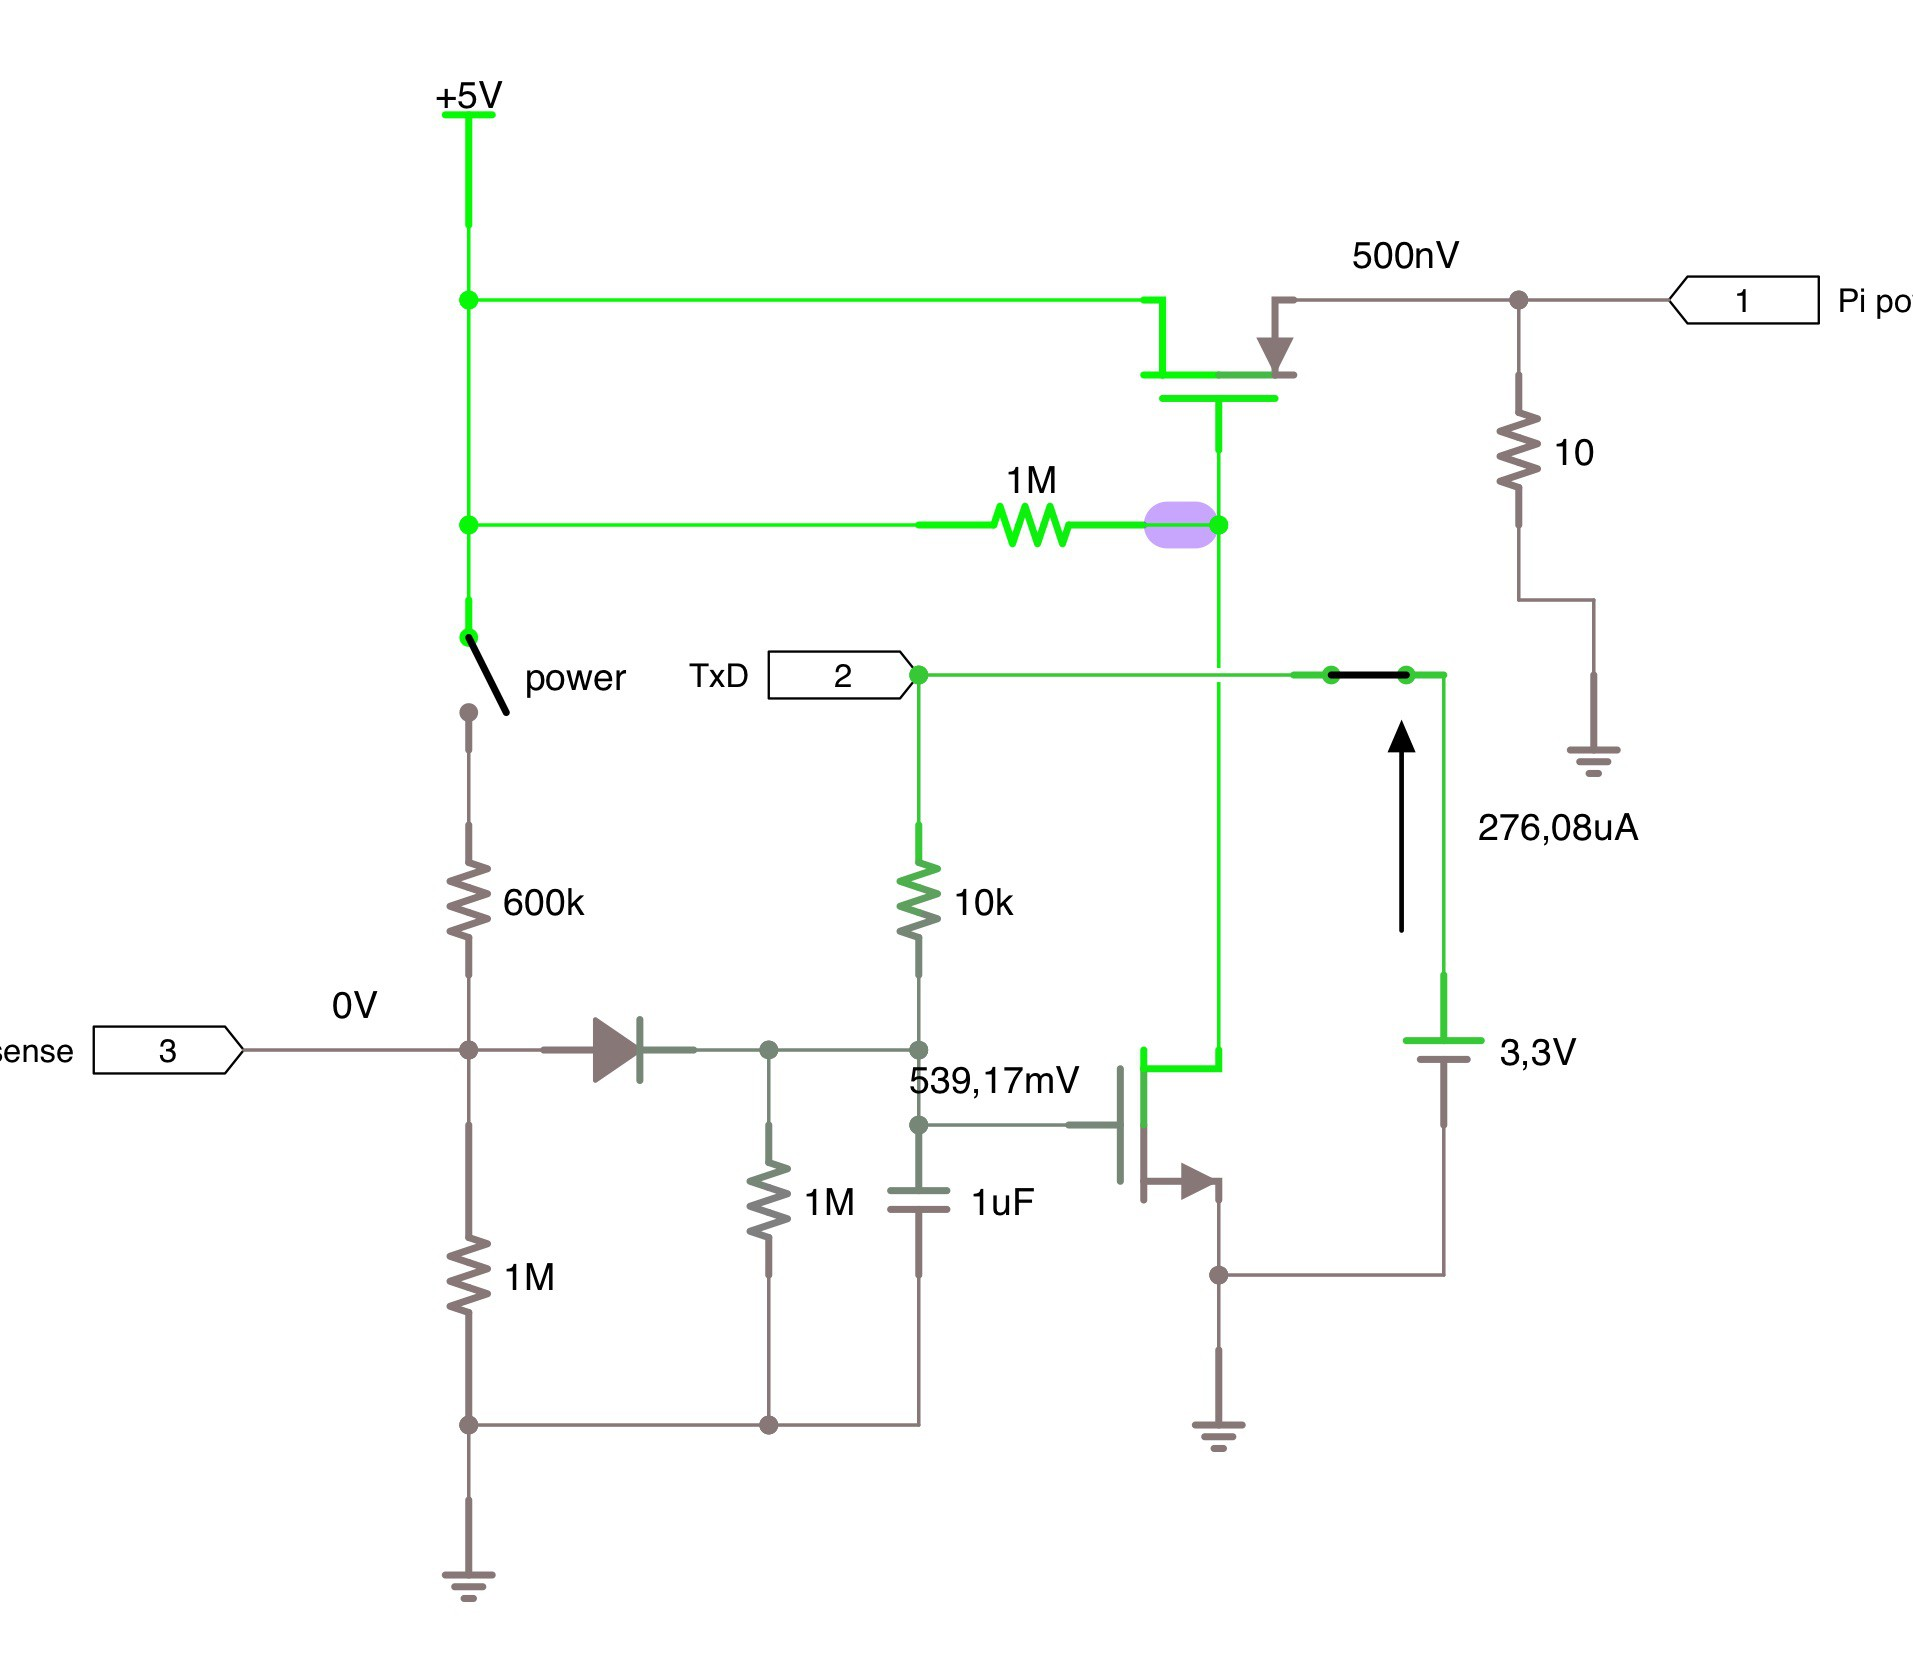 Comfortable Bulldog Security Diagrams Tall 2 Humbuckers In Series Shaped Dual Humbuckers Technical Service Bulletin Lookup Old Tsb Database BlackCircuit Diagram Of Solar Power System Off Circuit | Details | Hackaday